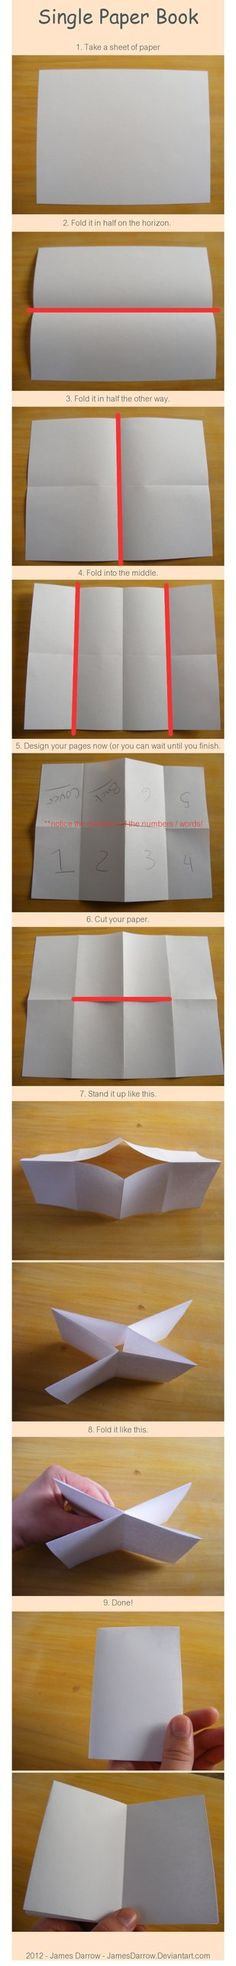 Single Paper Book, this would be useful for a handout when you have lots of information to share